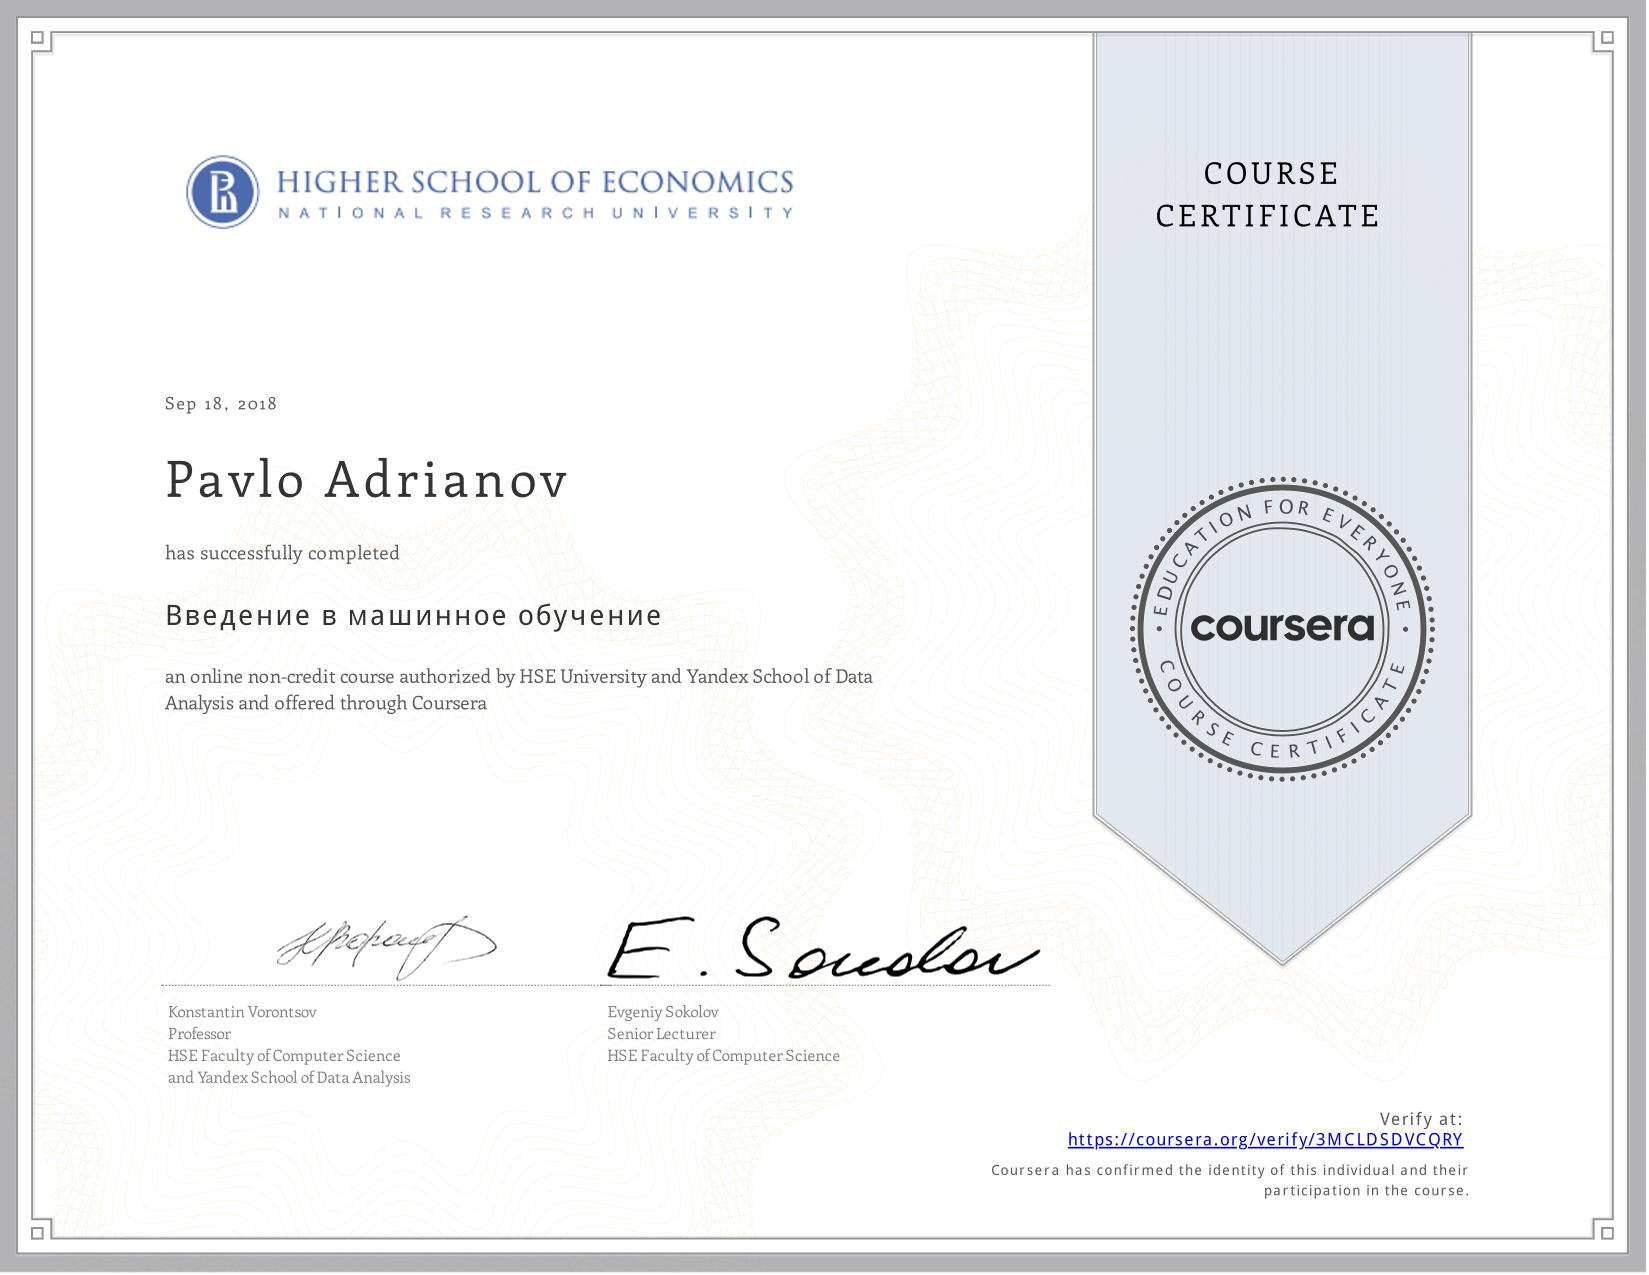 View certificate for Pavlo Adrianov, Введение в машинное обучение, an online non-credit course authorized by National Research University Higher School of Economics & Yandex School of Data Analysis and offered through Coursera